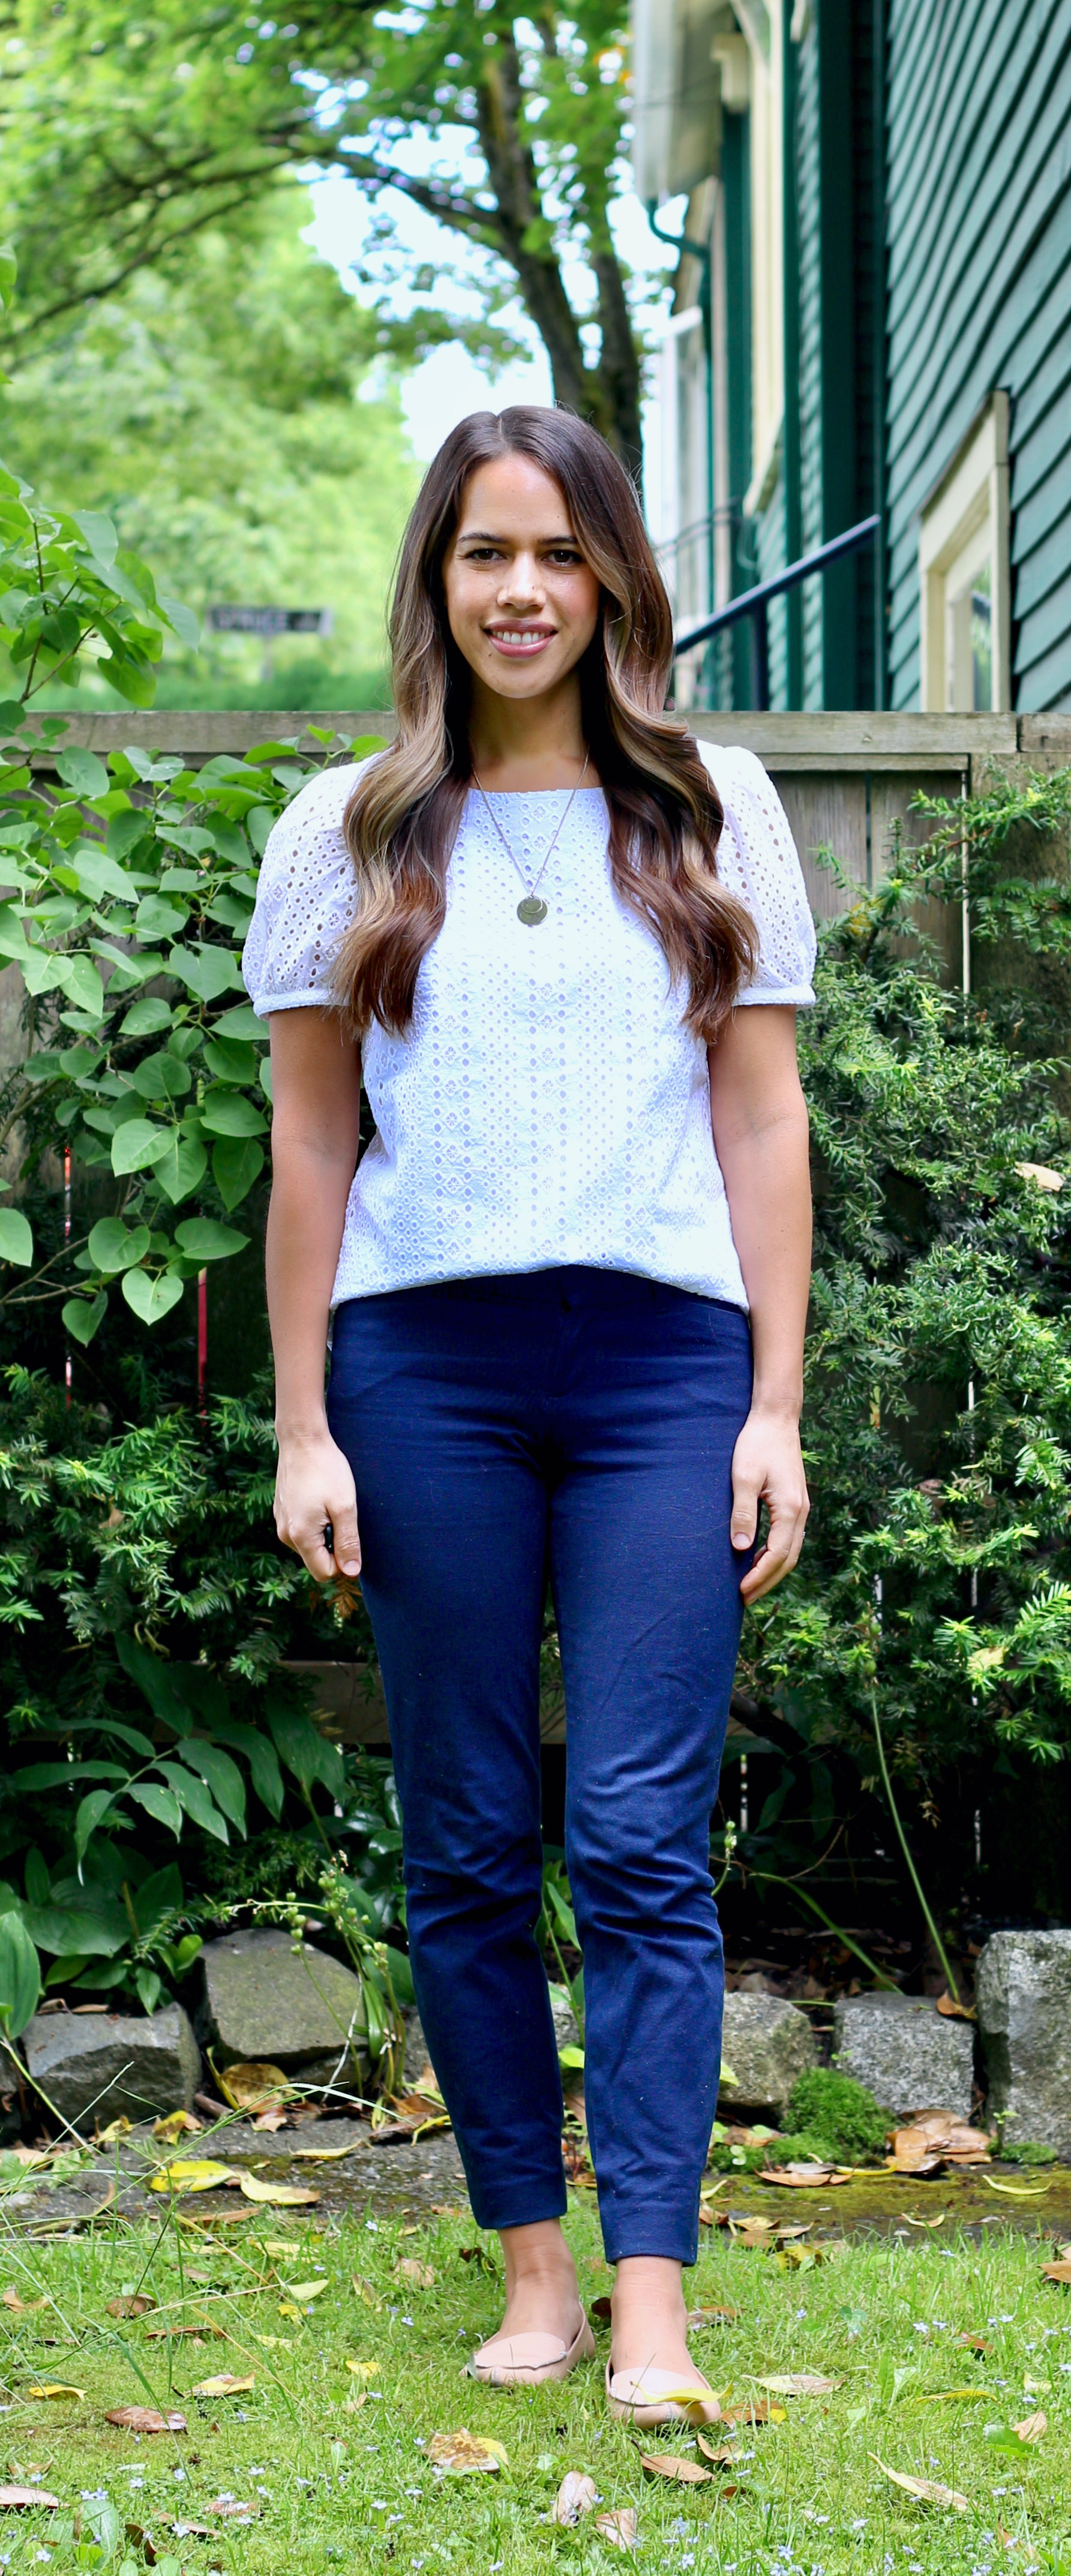 Jules in Flats - Eyelet Puff Sleeve Top with Navy Ankle Pants (Business Casual Workwear on a Budget)